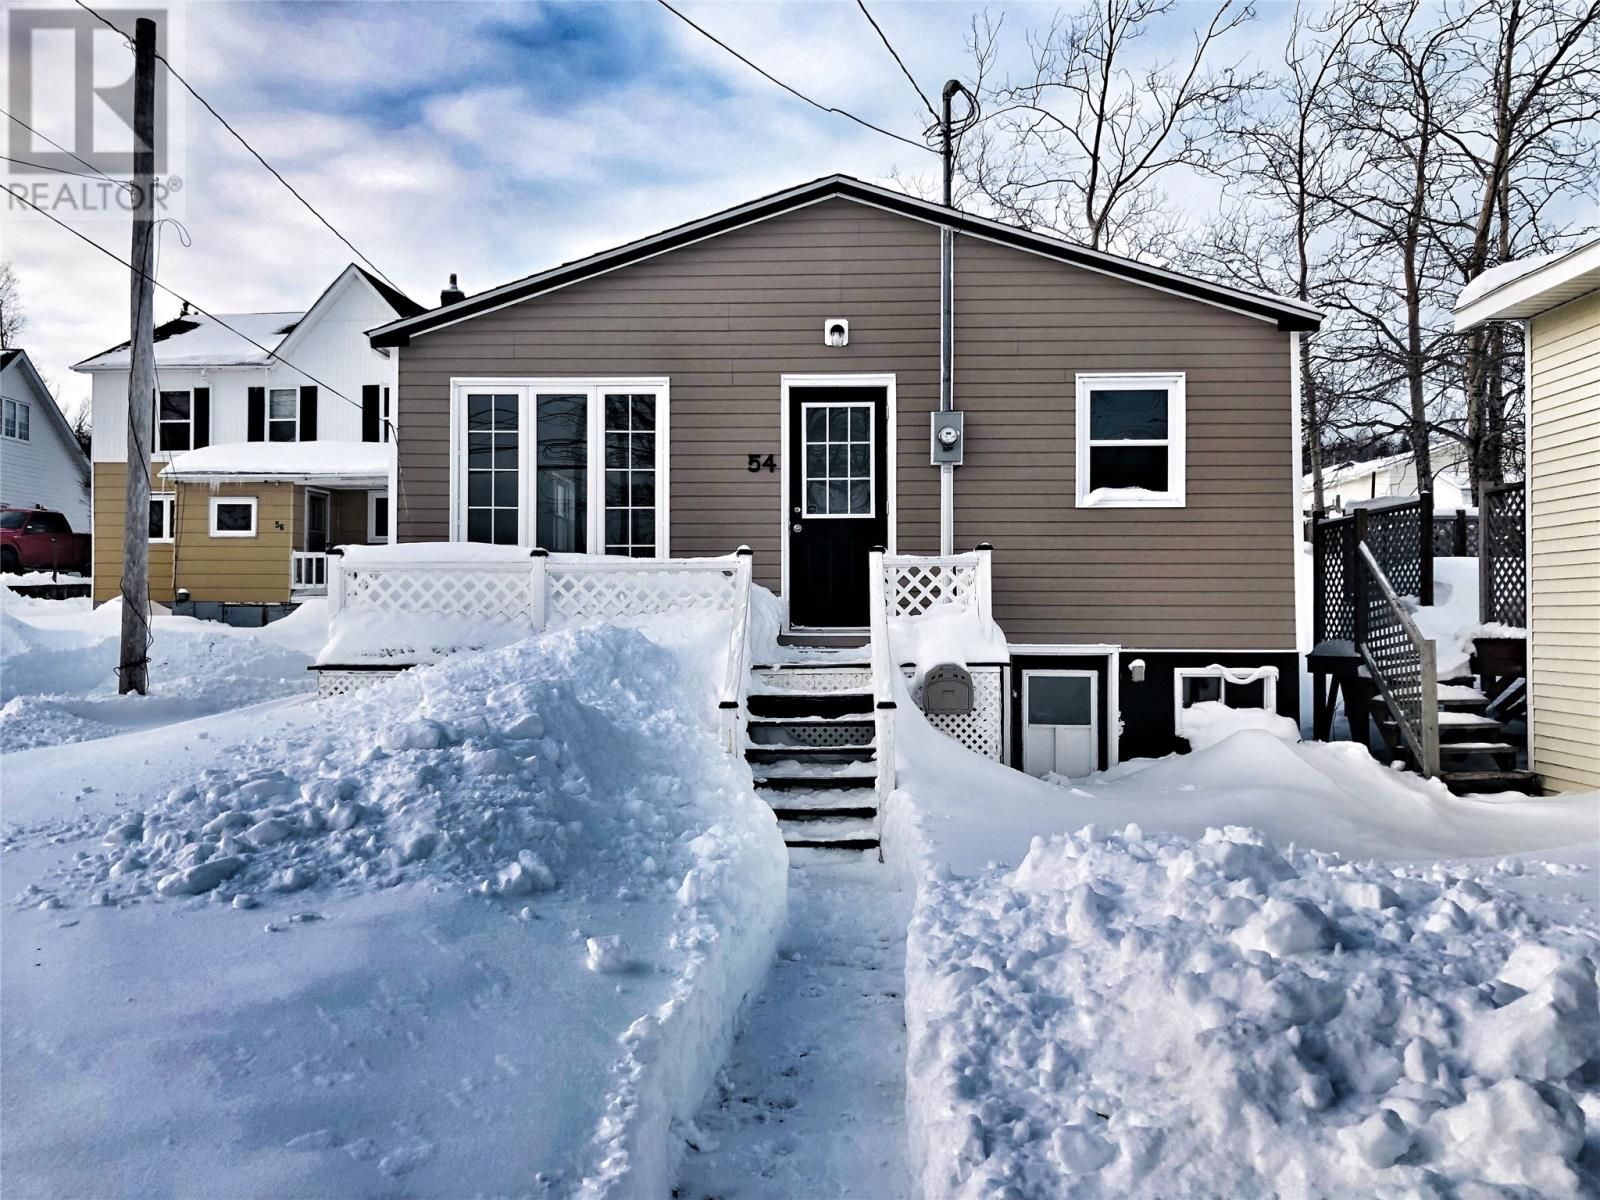 Main Photo: 54 Main Street in Lewisporte: House for sale : MLS®# 1225489